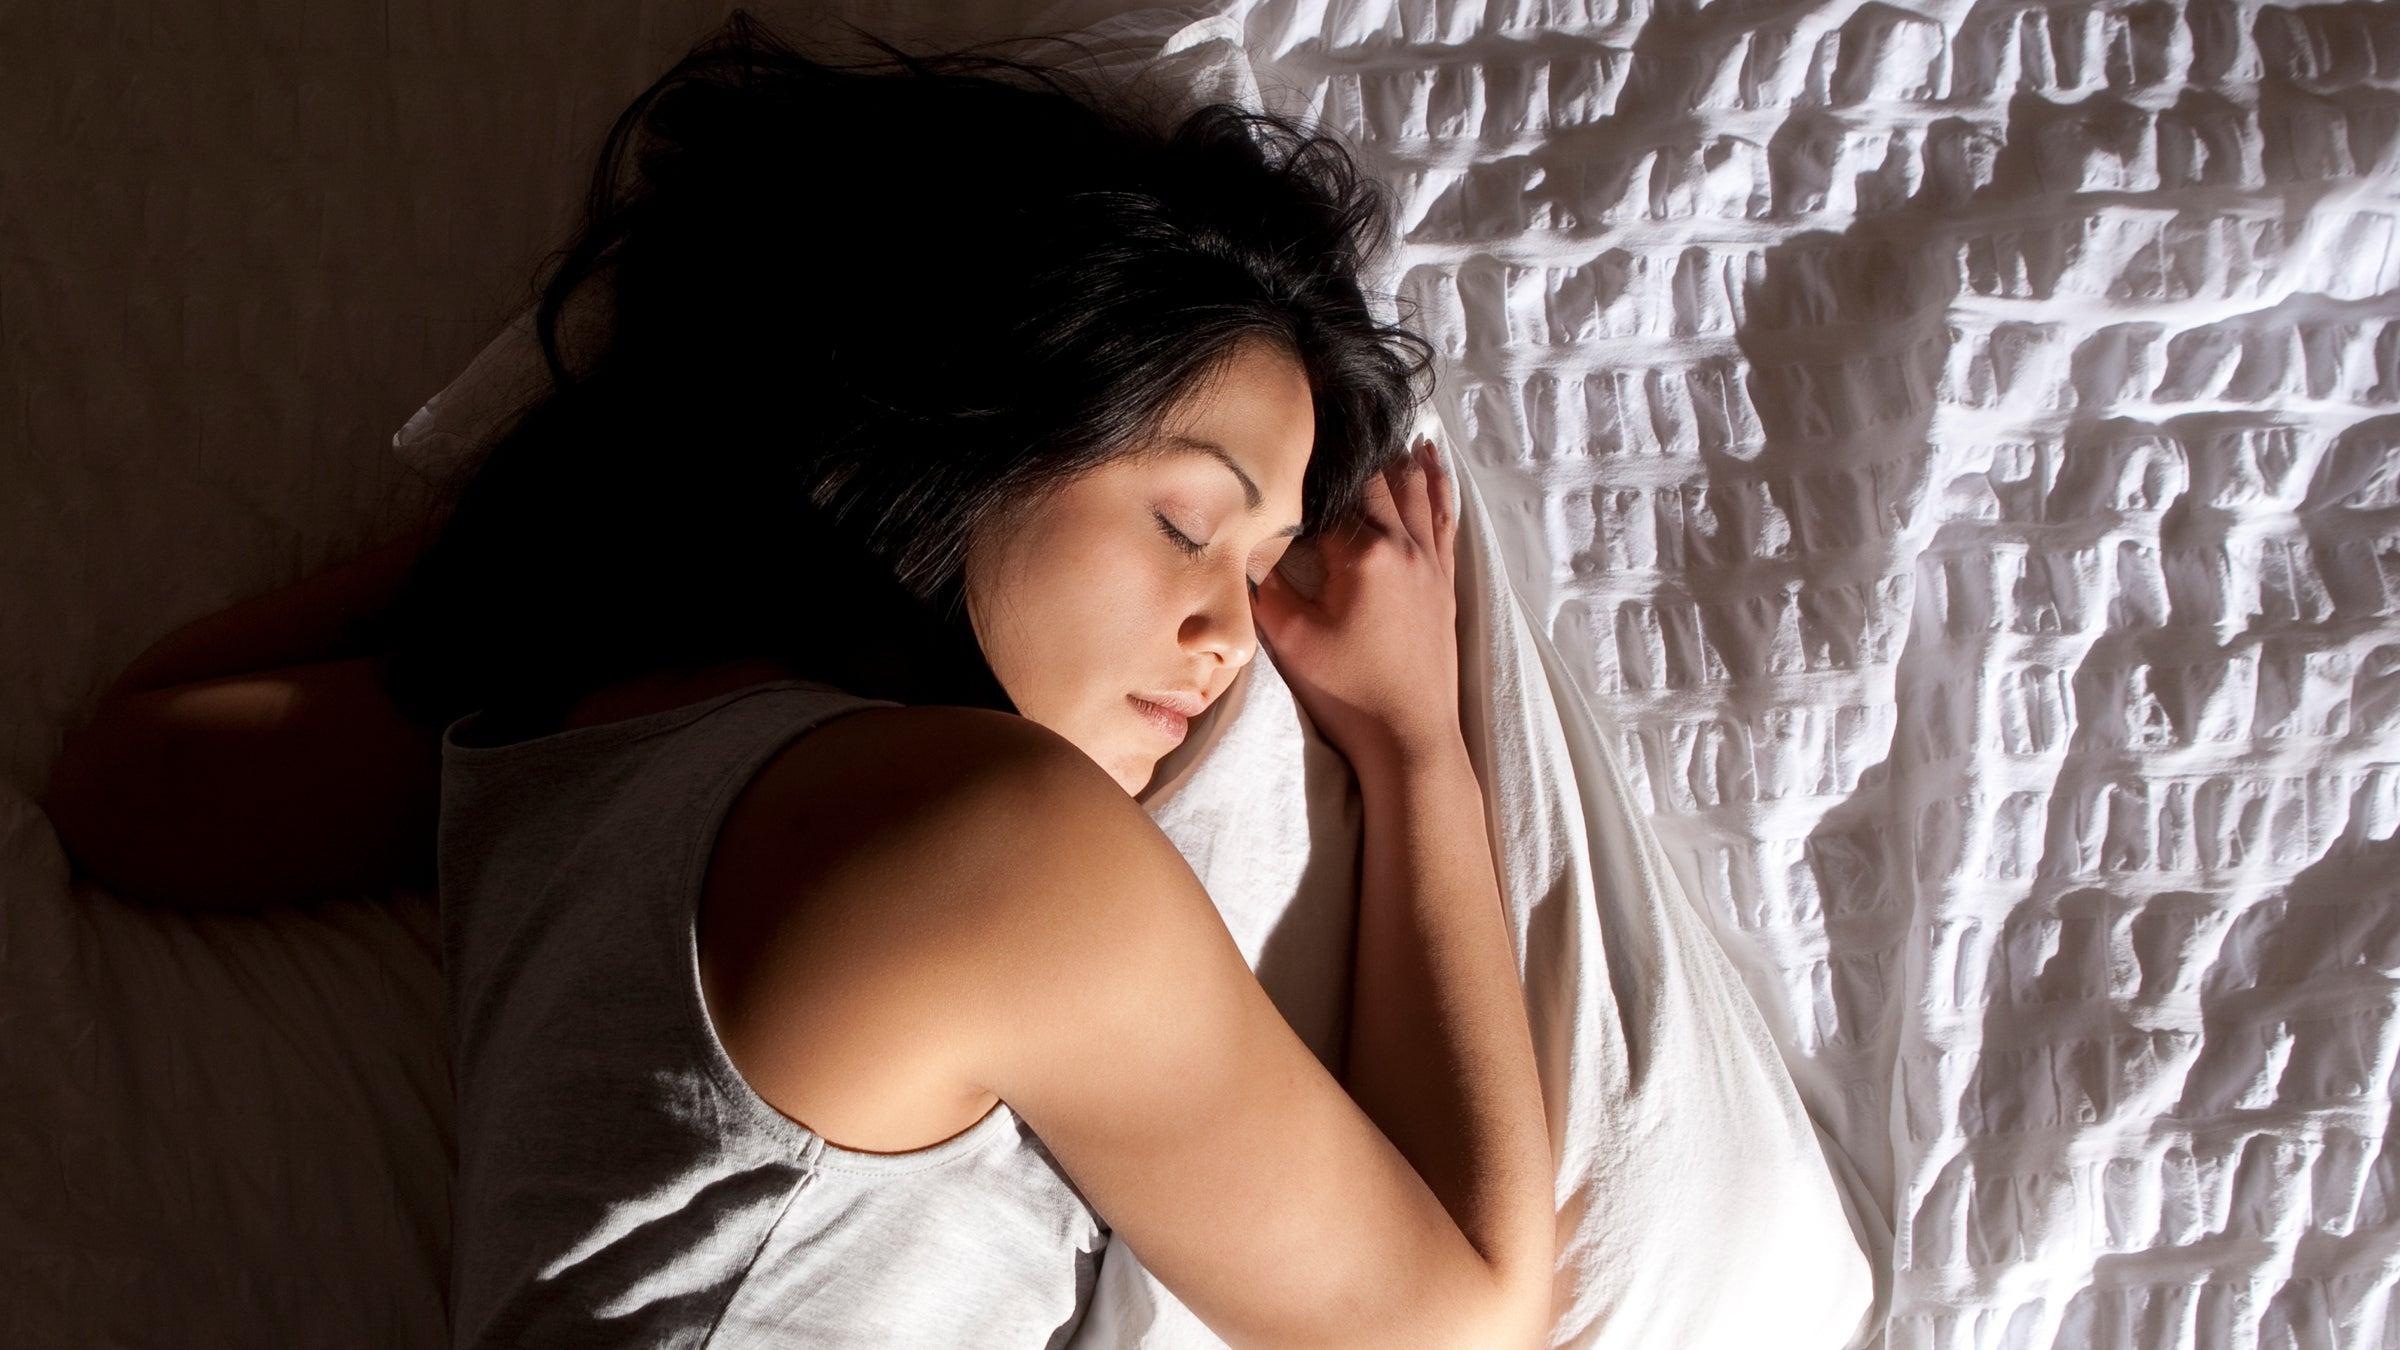 6 Sleep Myths That Could be Keeping You Up